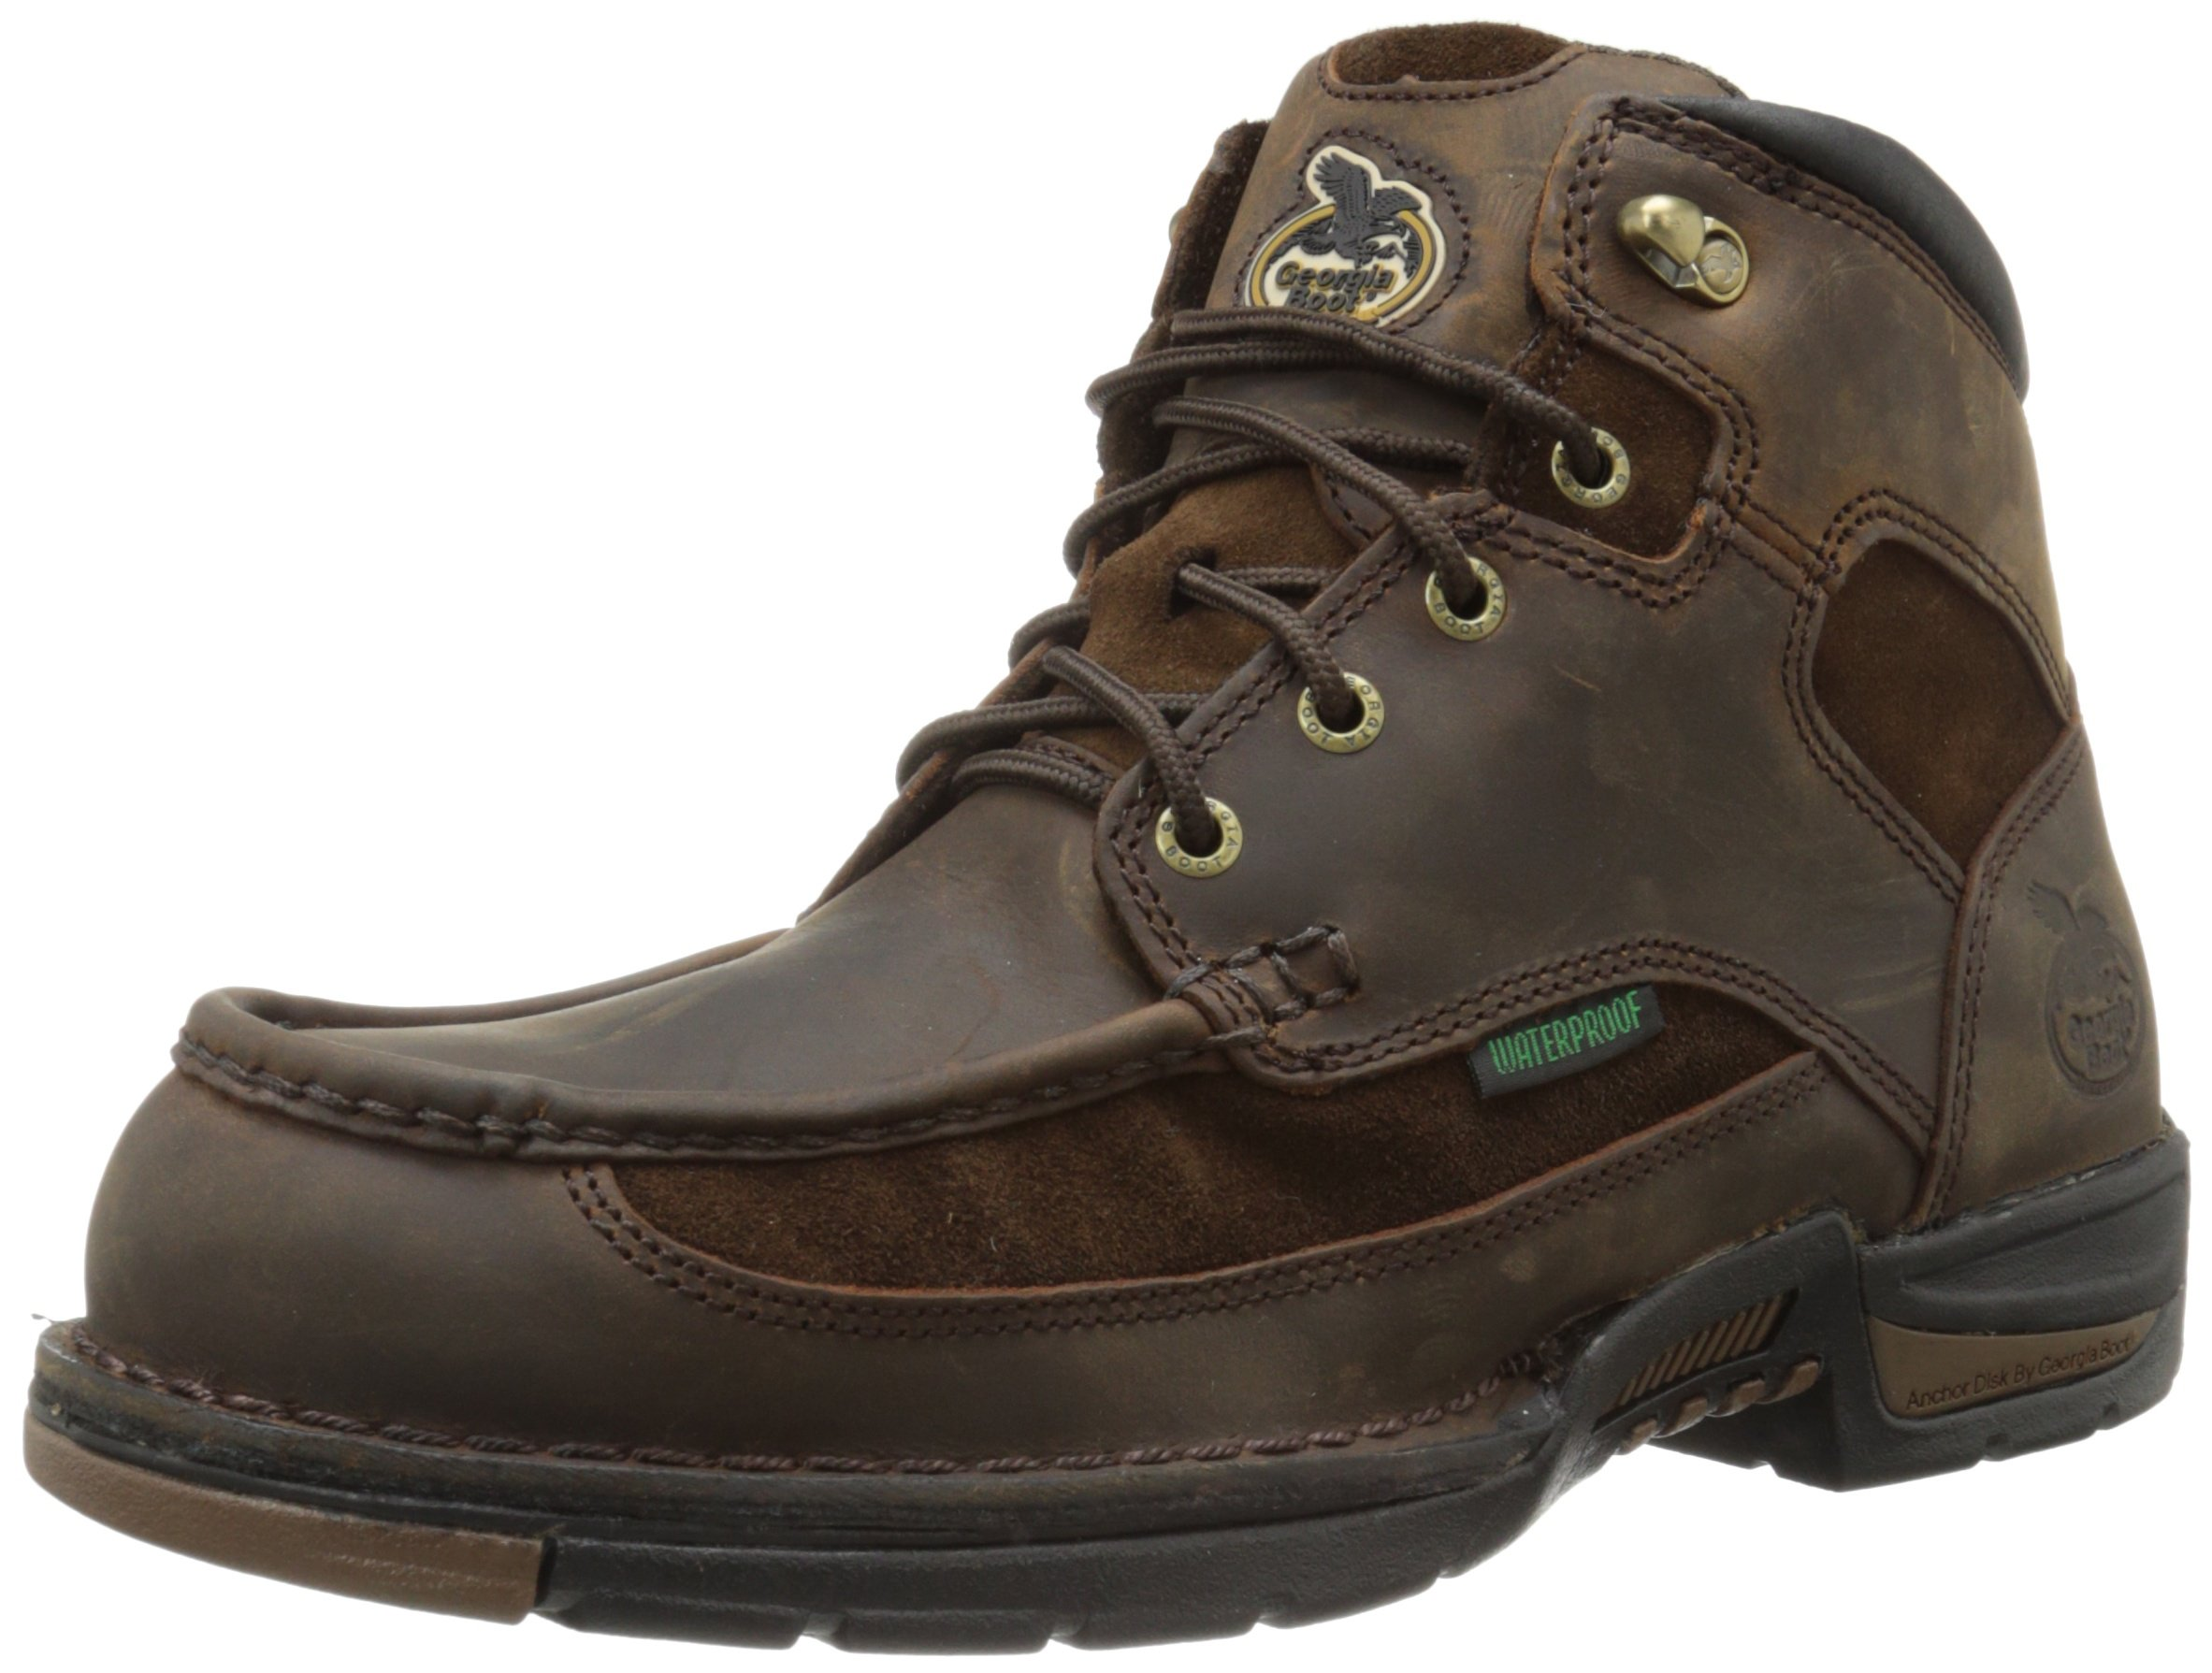 Georgia Boot Men's Toe Athens G7403 Work Boot,Brown,10.5 M US